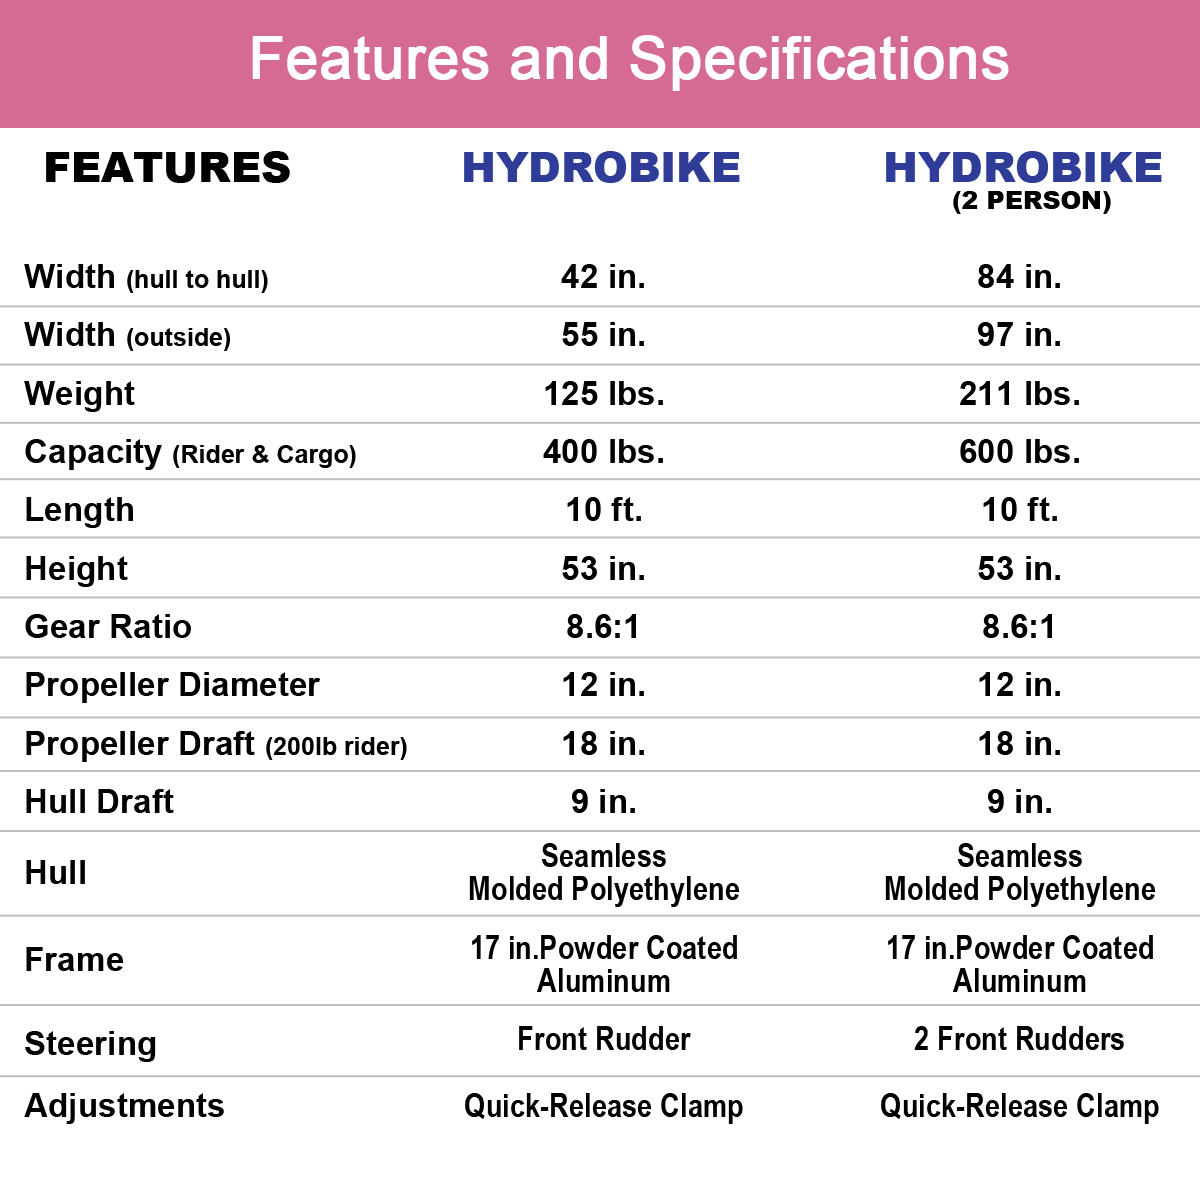 Hydrobike Specifications